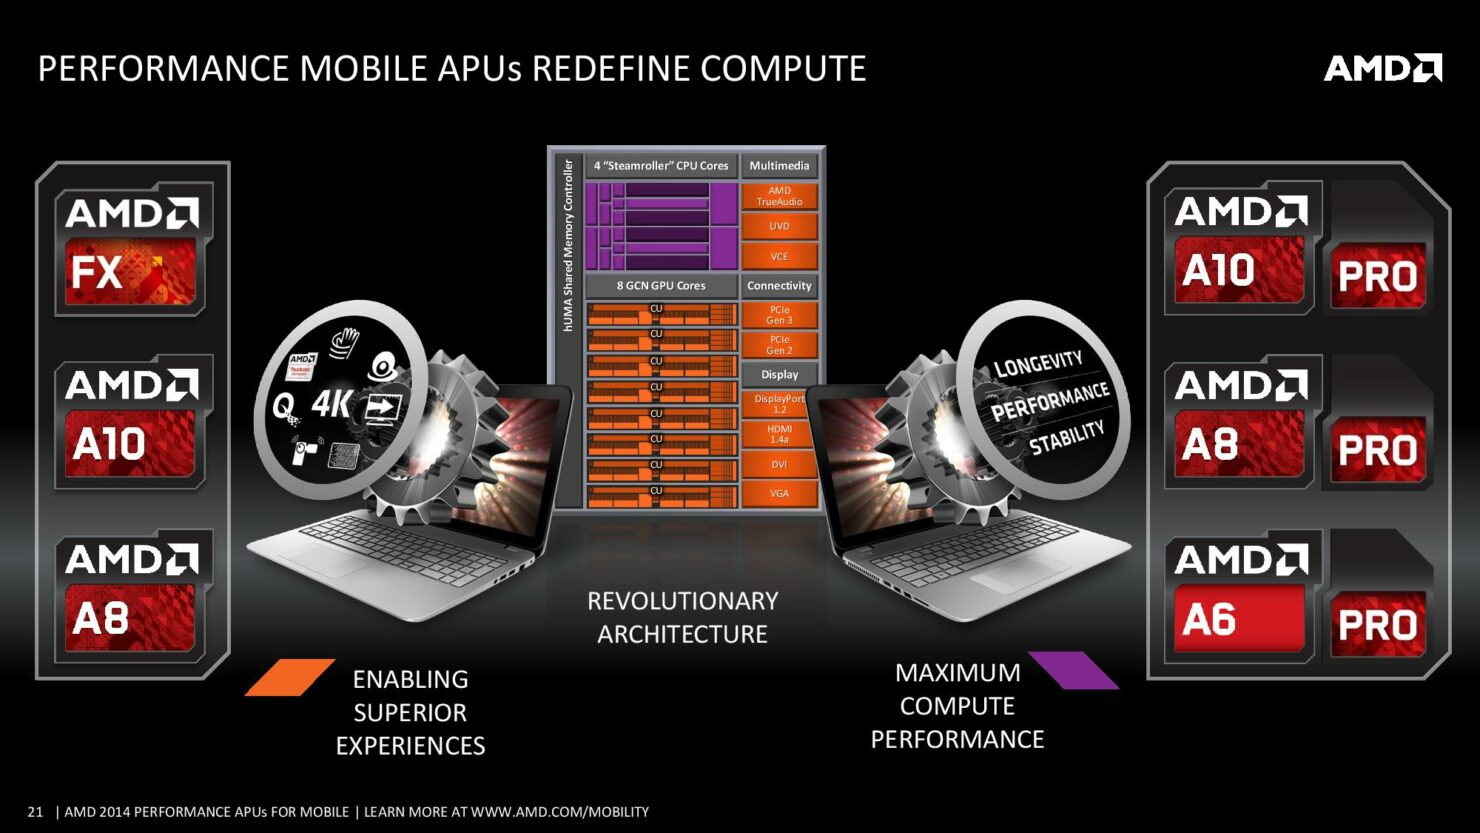 amd2014performancemobileapus-140528183404-phpapp02-page-021